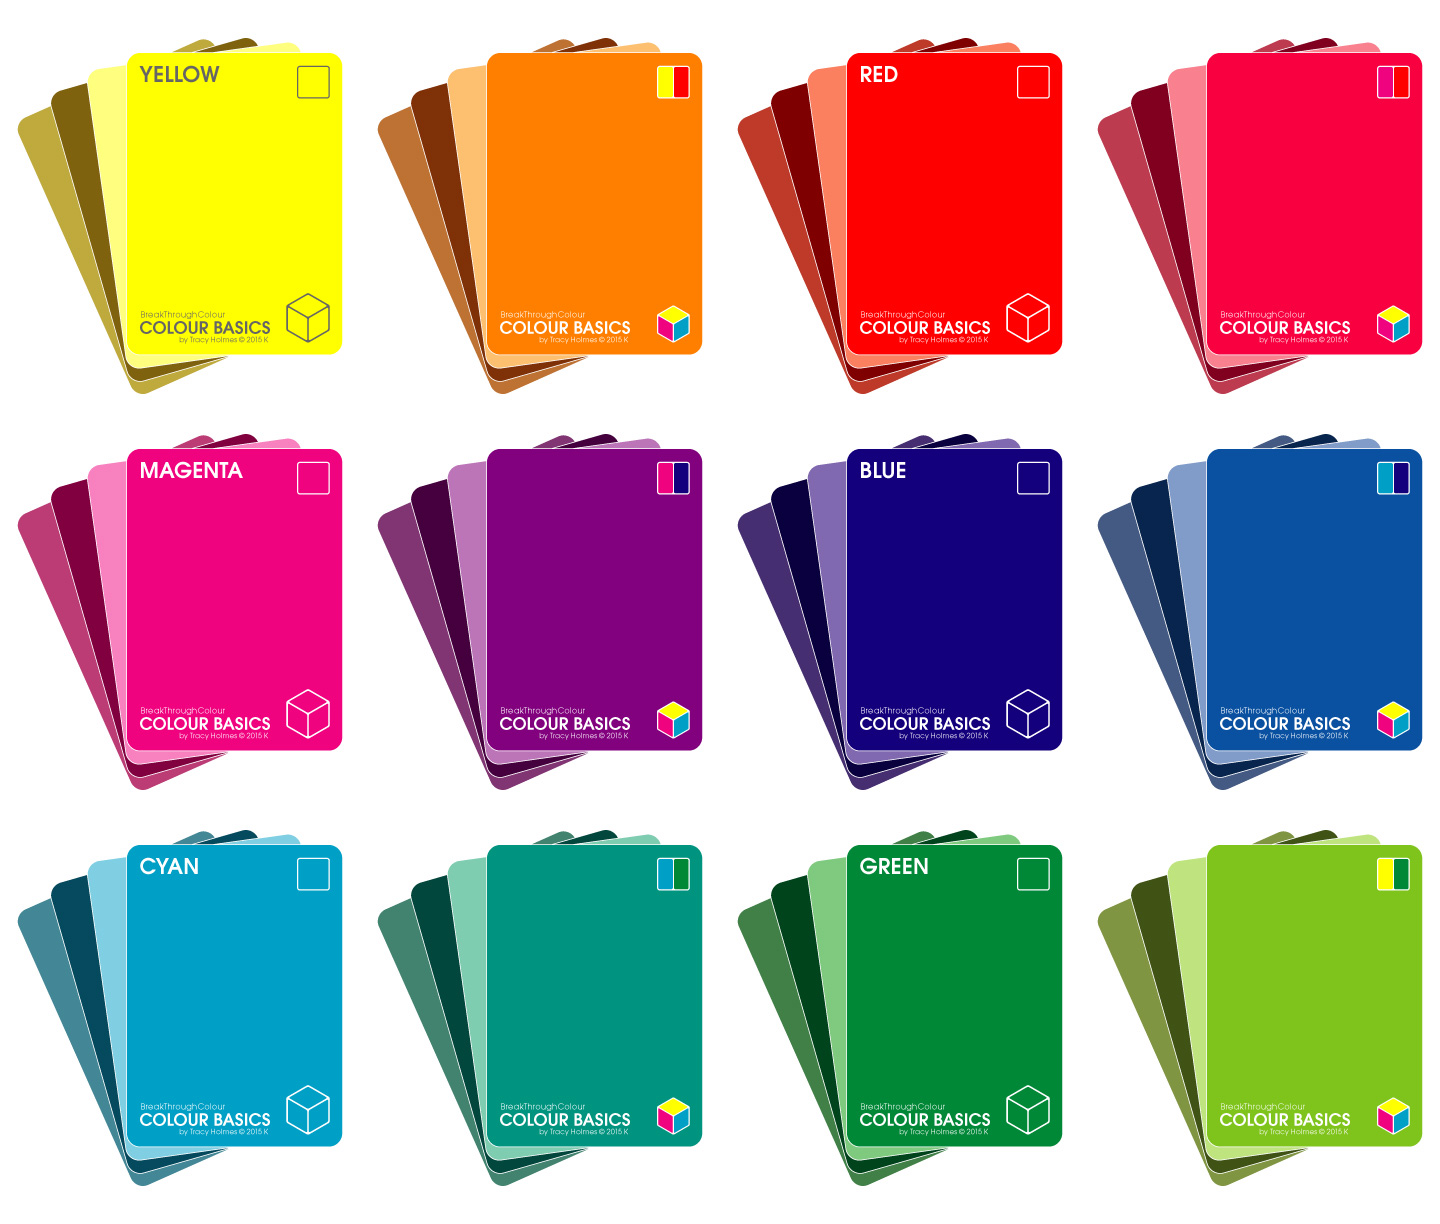 Colour Basics     |  48 cards in 12 sets of four-of-a-kind: Hue + Tint + Shade + Tone